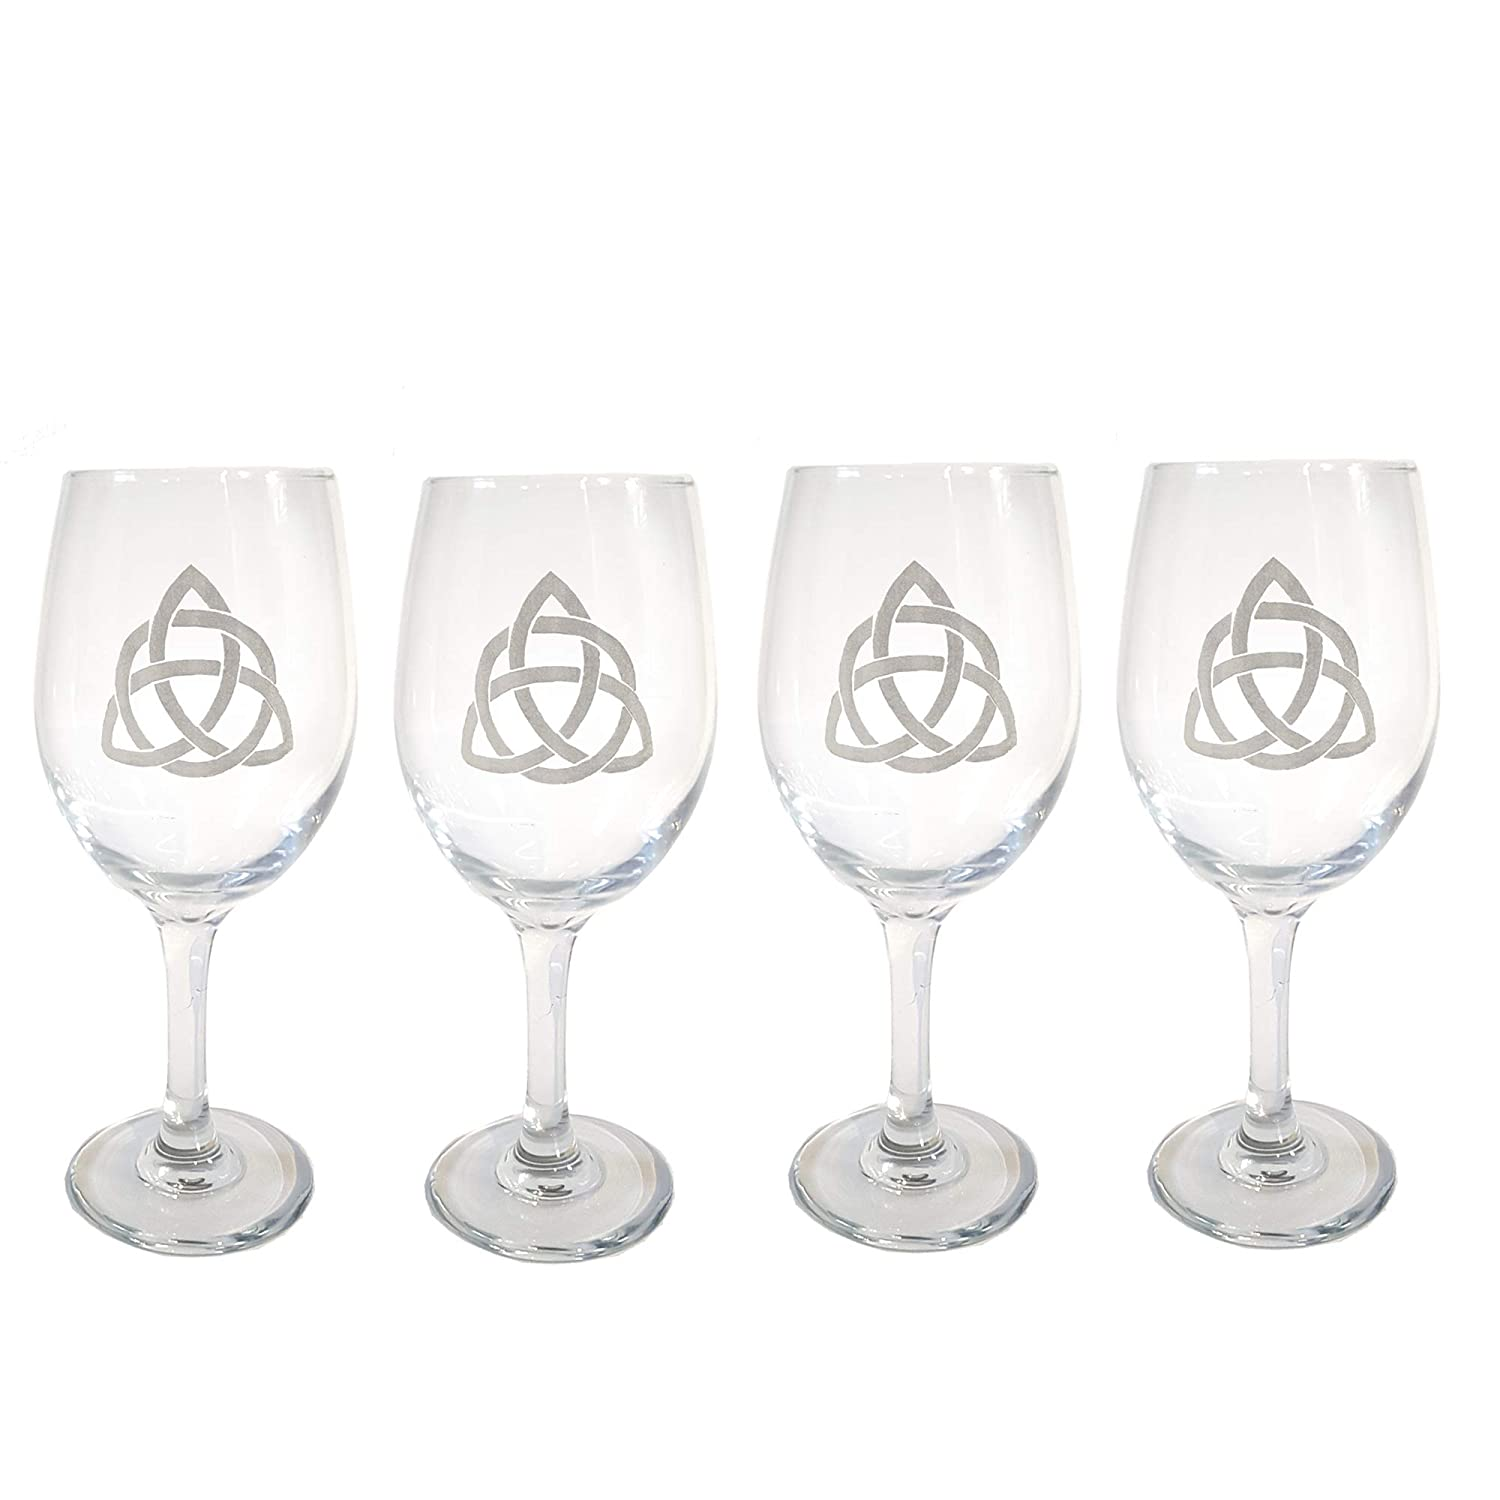 Celtic Trinity Clear Wine Glass Set 4 Eng High Branded goods quality new - Free of Personalized